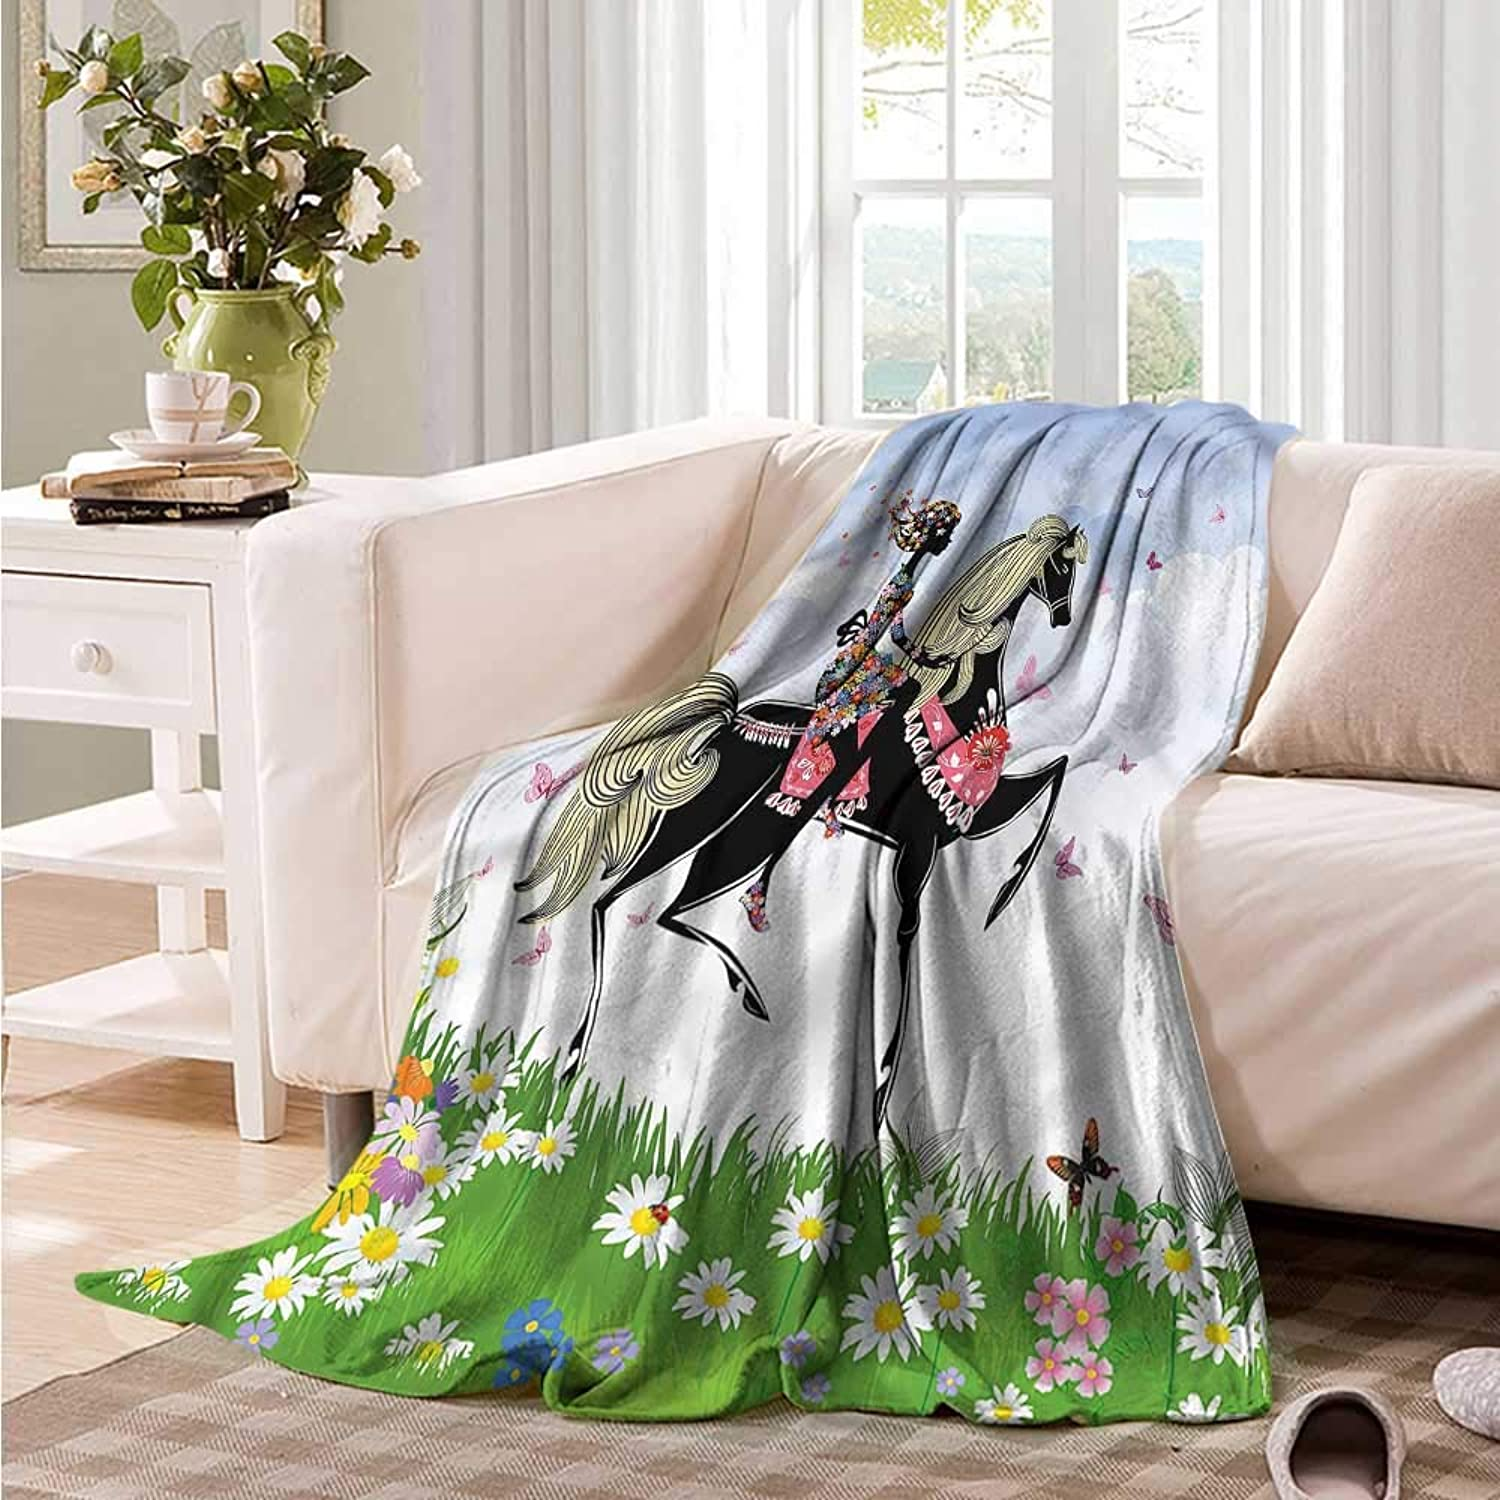 Oncegod Flannel Blanket Horse Girl Riding Pony in Spring Camping Throw,Office wrap 60  W x 51  L